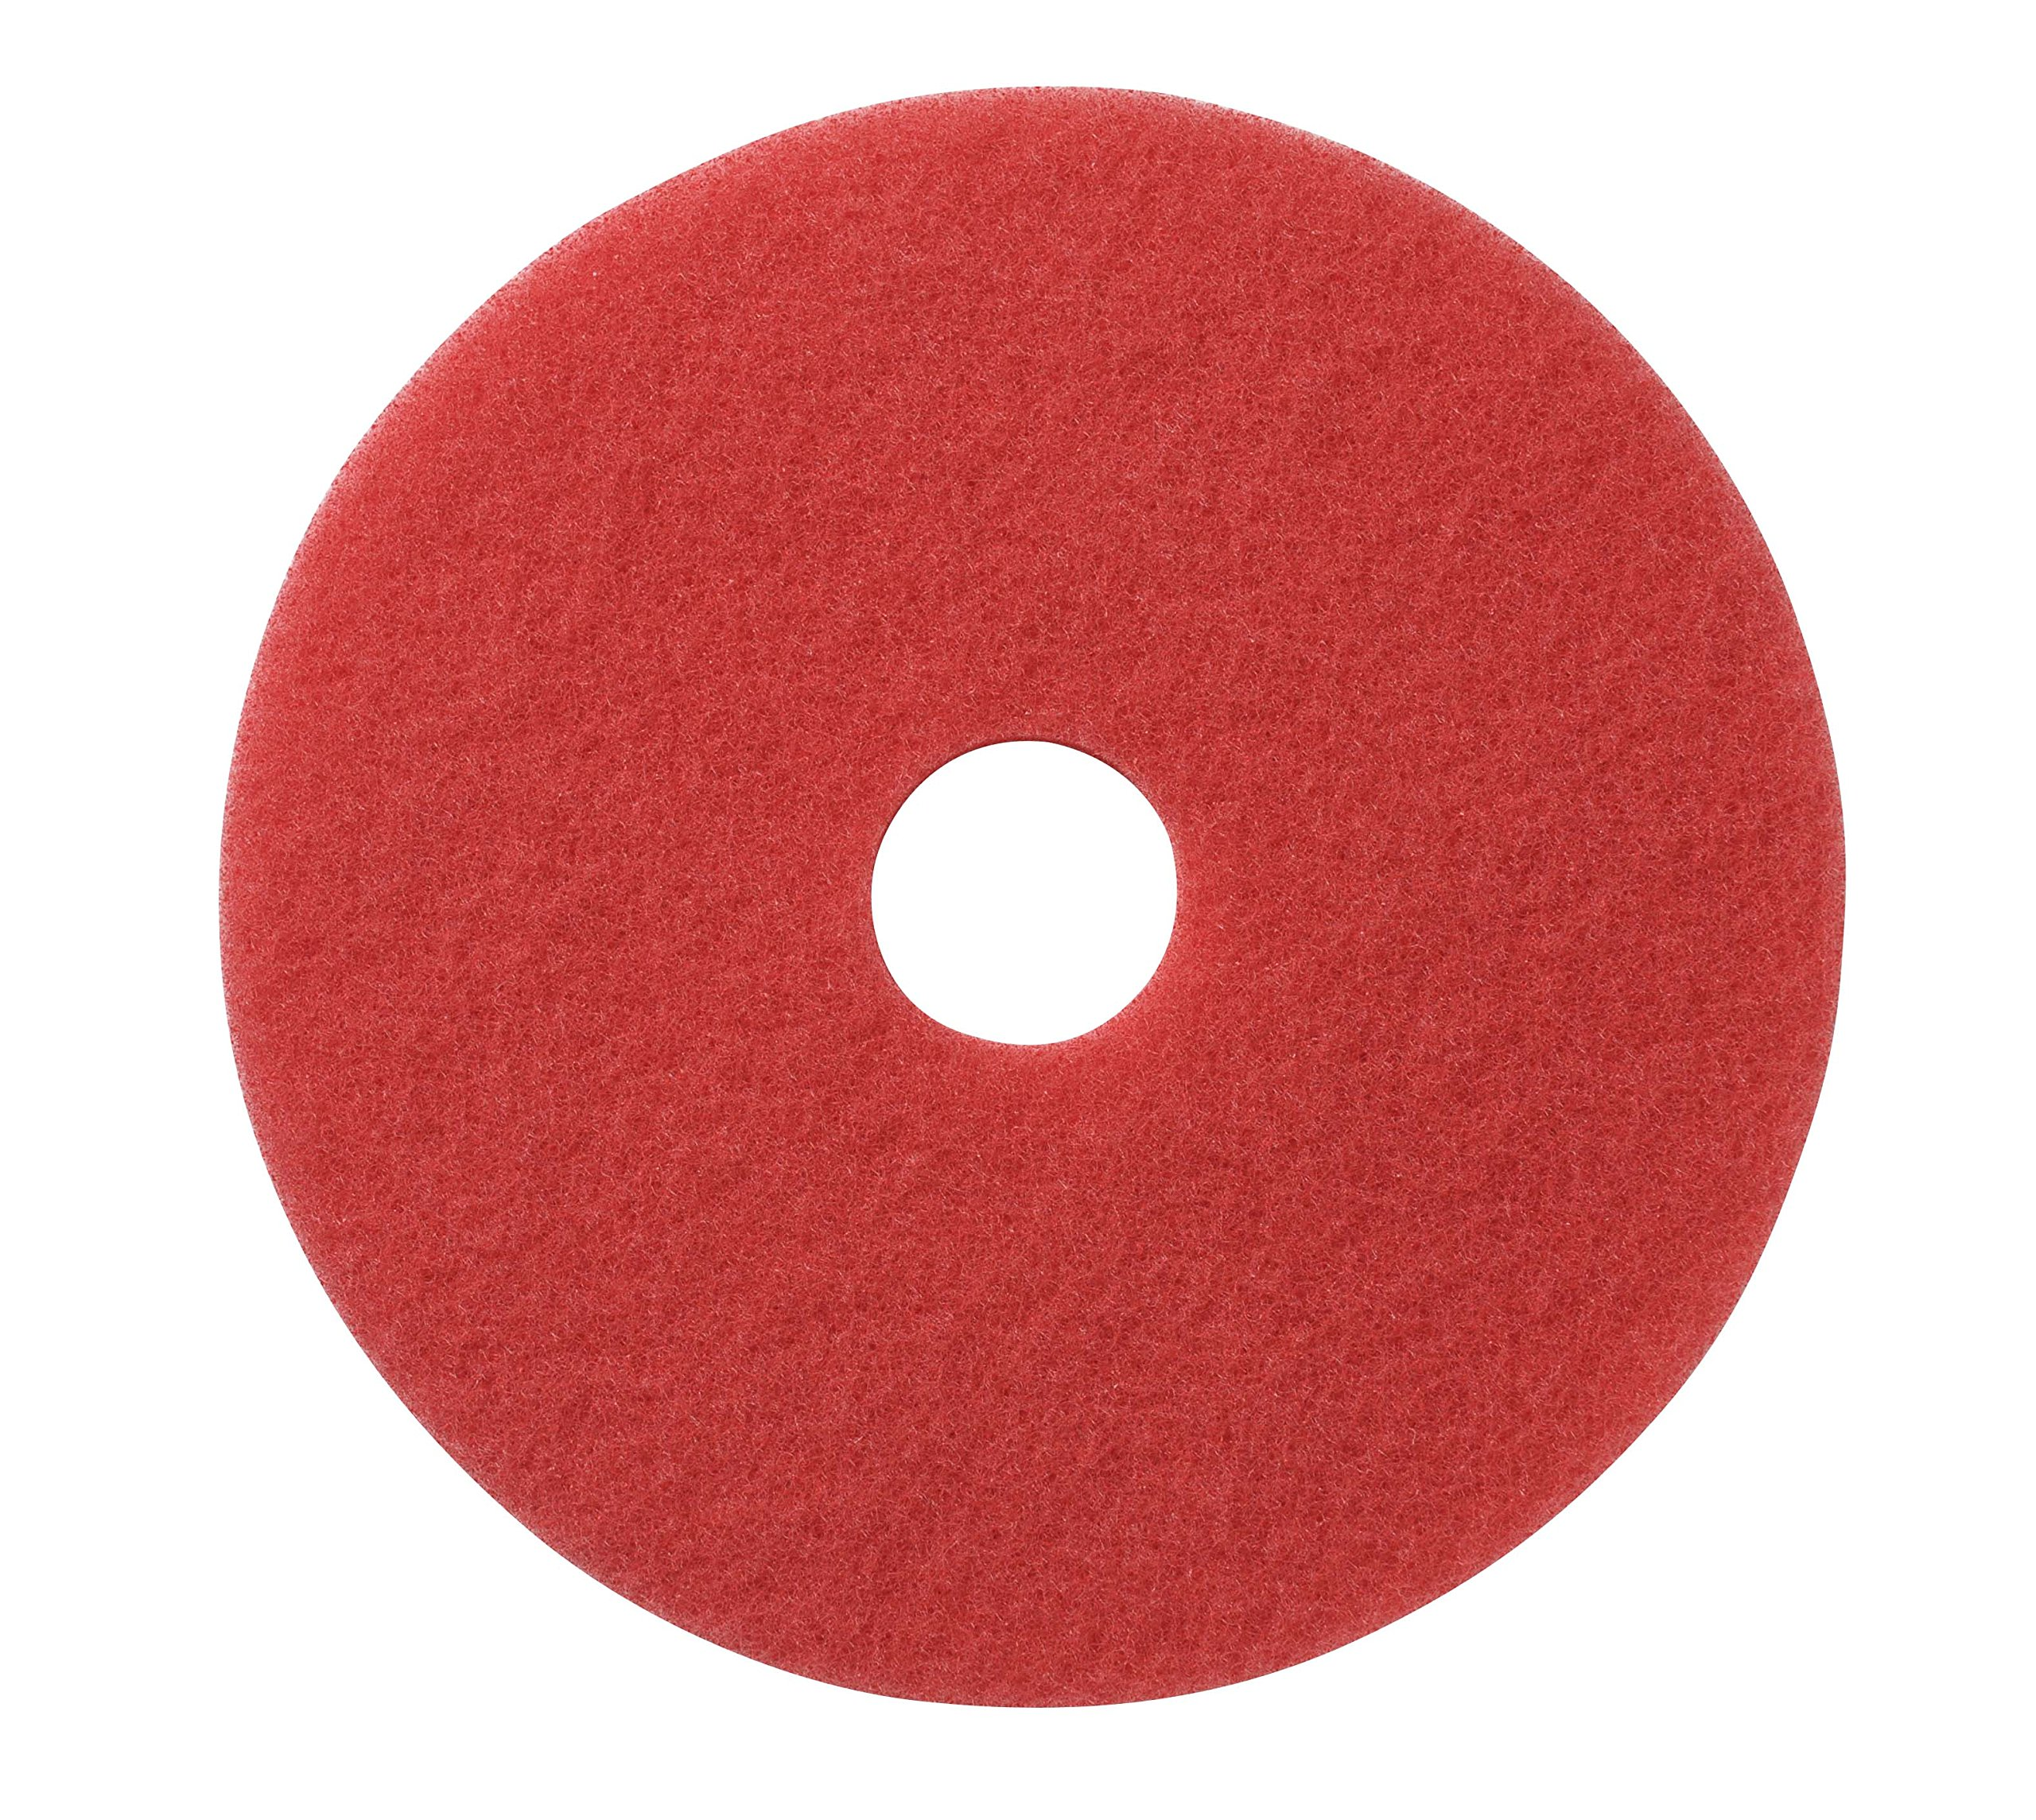 Glit/Microtron 404417 Daily Cleaning and Buffing Pad, 17'', Red (Pack of 5) by Glit / Microtron